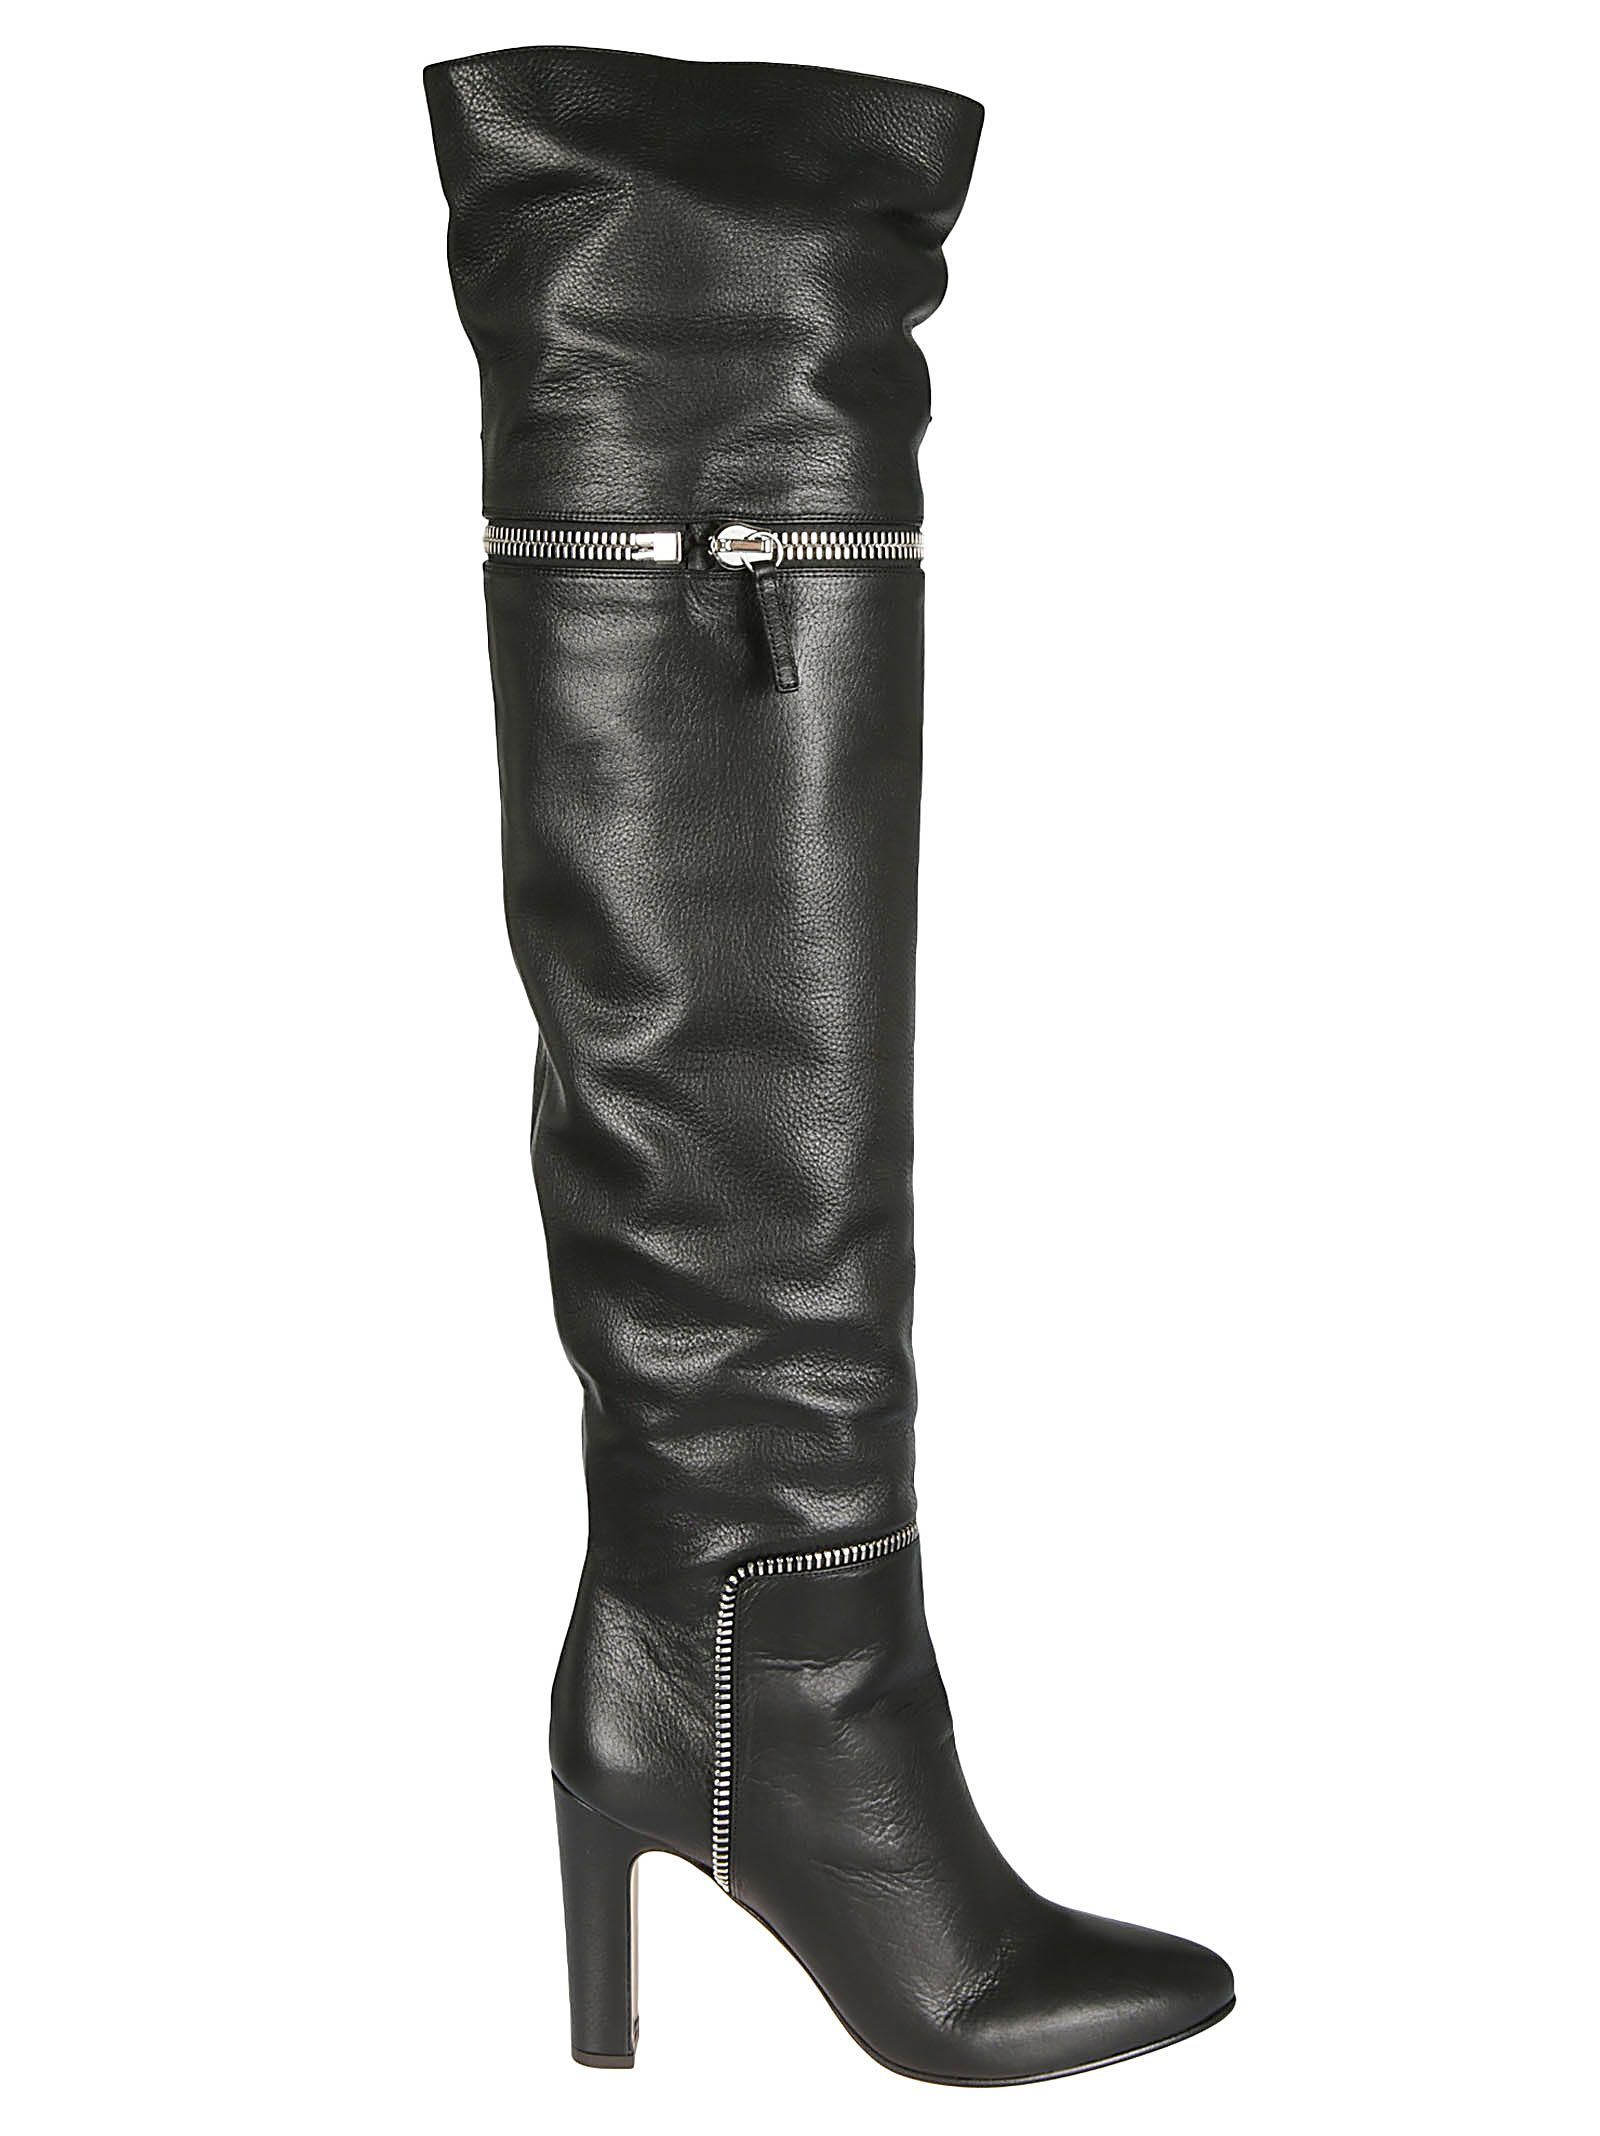 Zipped Over The Knee Boots, Black